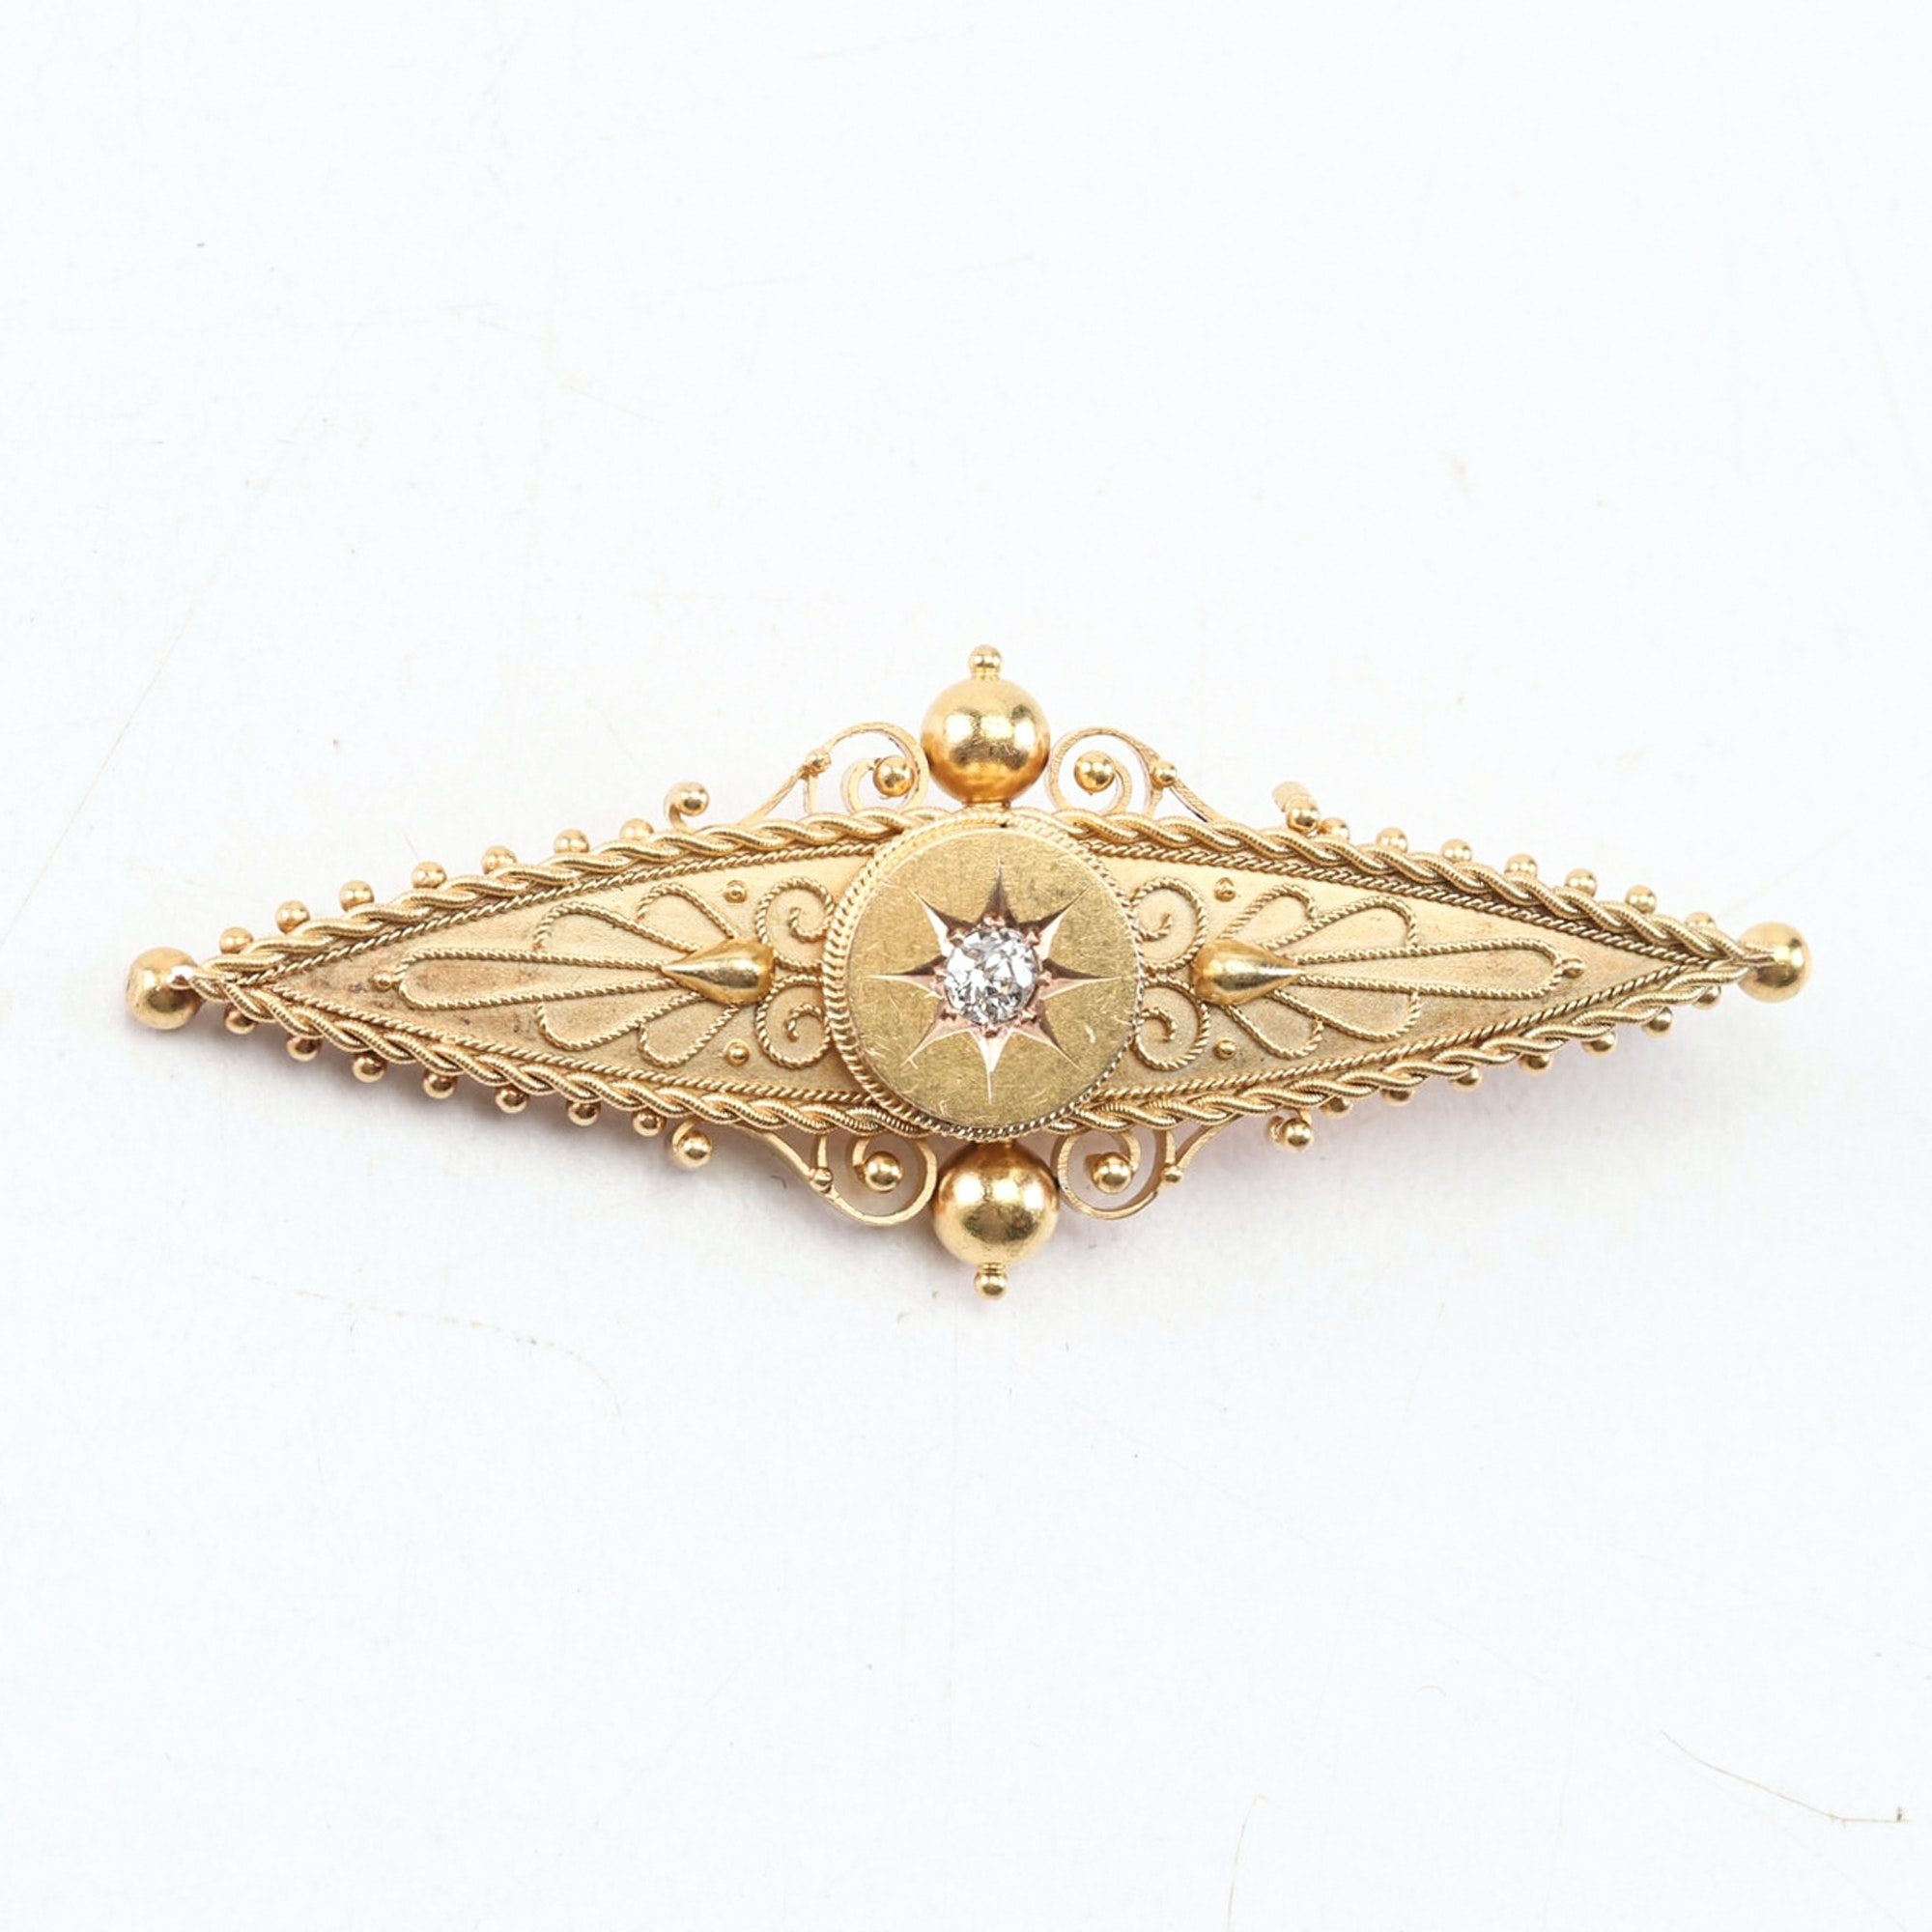 Vintage 14K and 18K Yellow Gold Converted Diamond Pendant